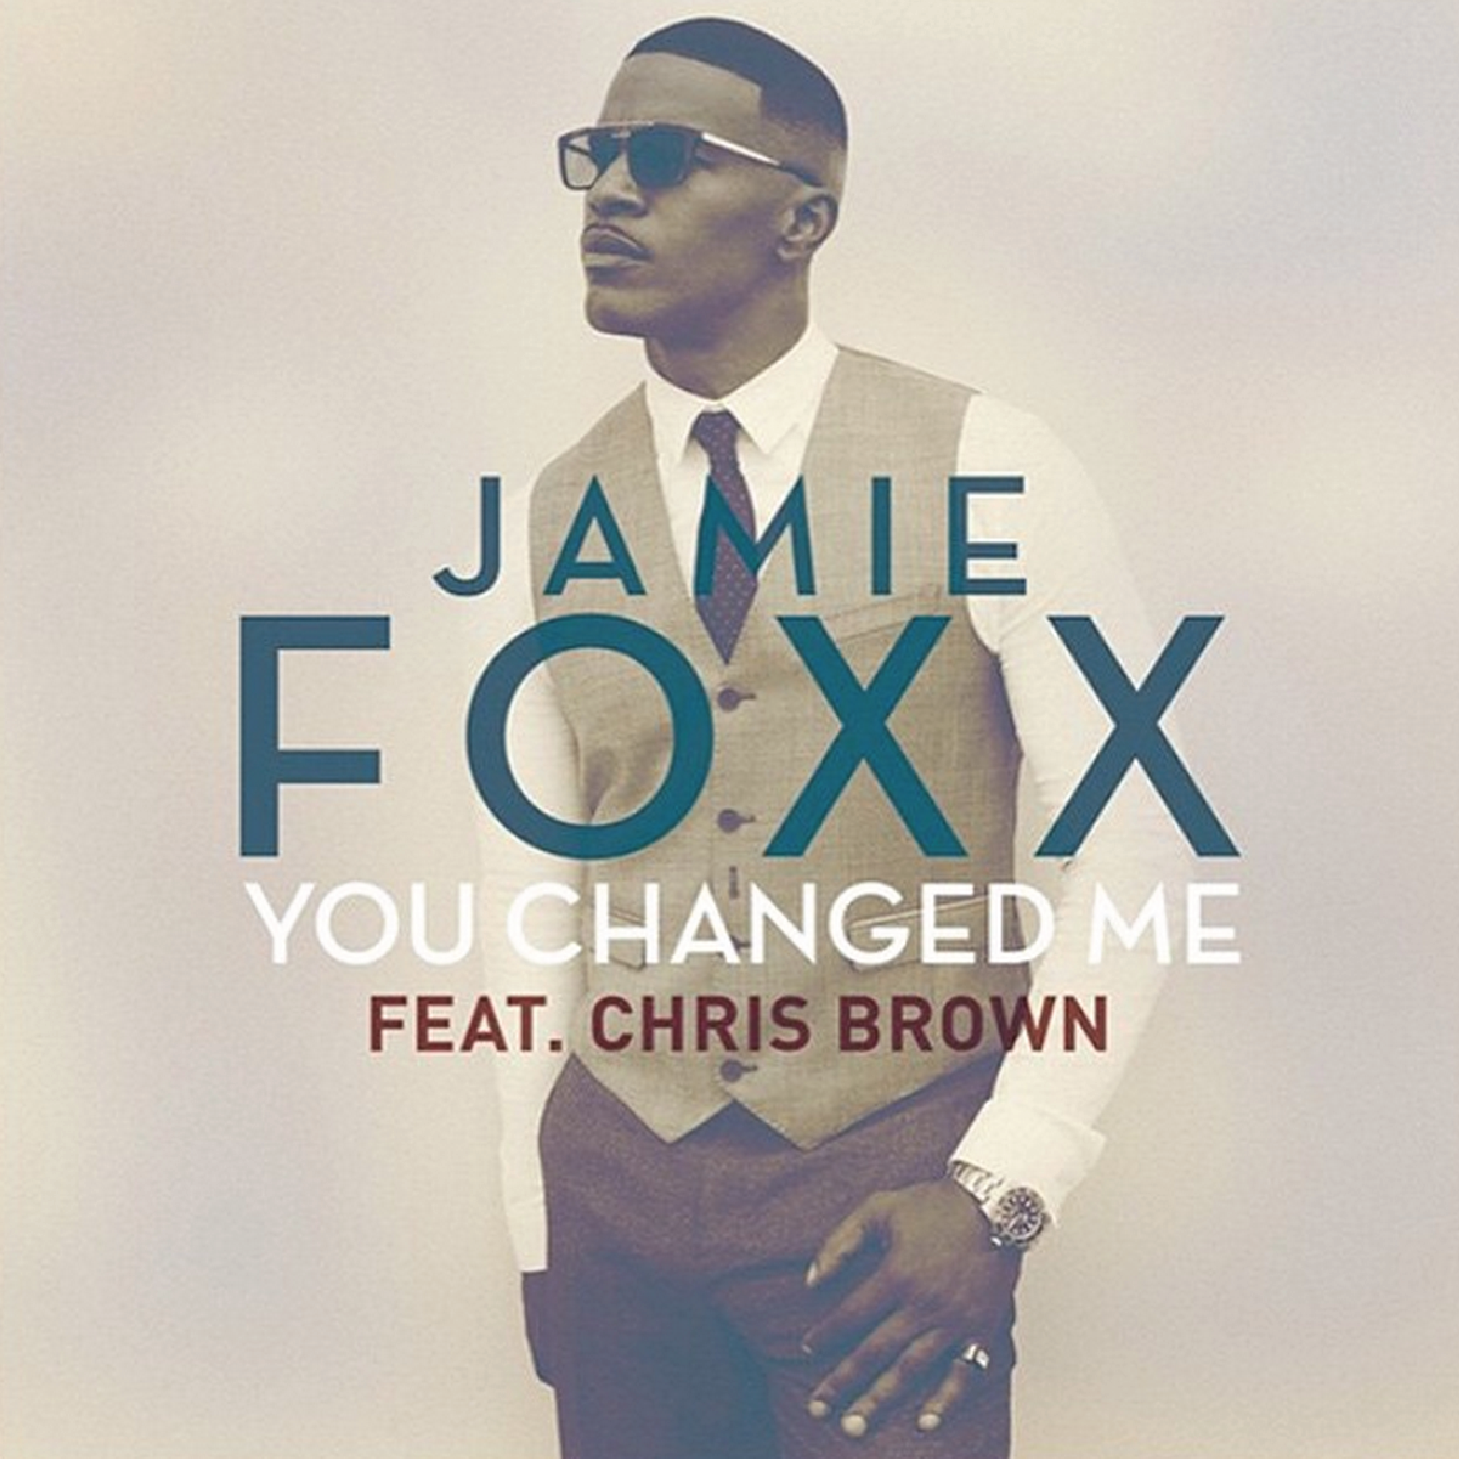 Shout out to Jordan Evans for producing the new record from Jamie Foxx and Chris Brown. Definitely go check this one out. You can grab it on iTunes  here .